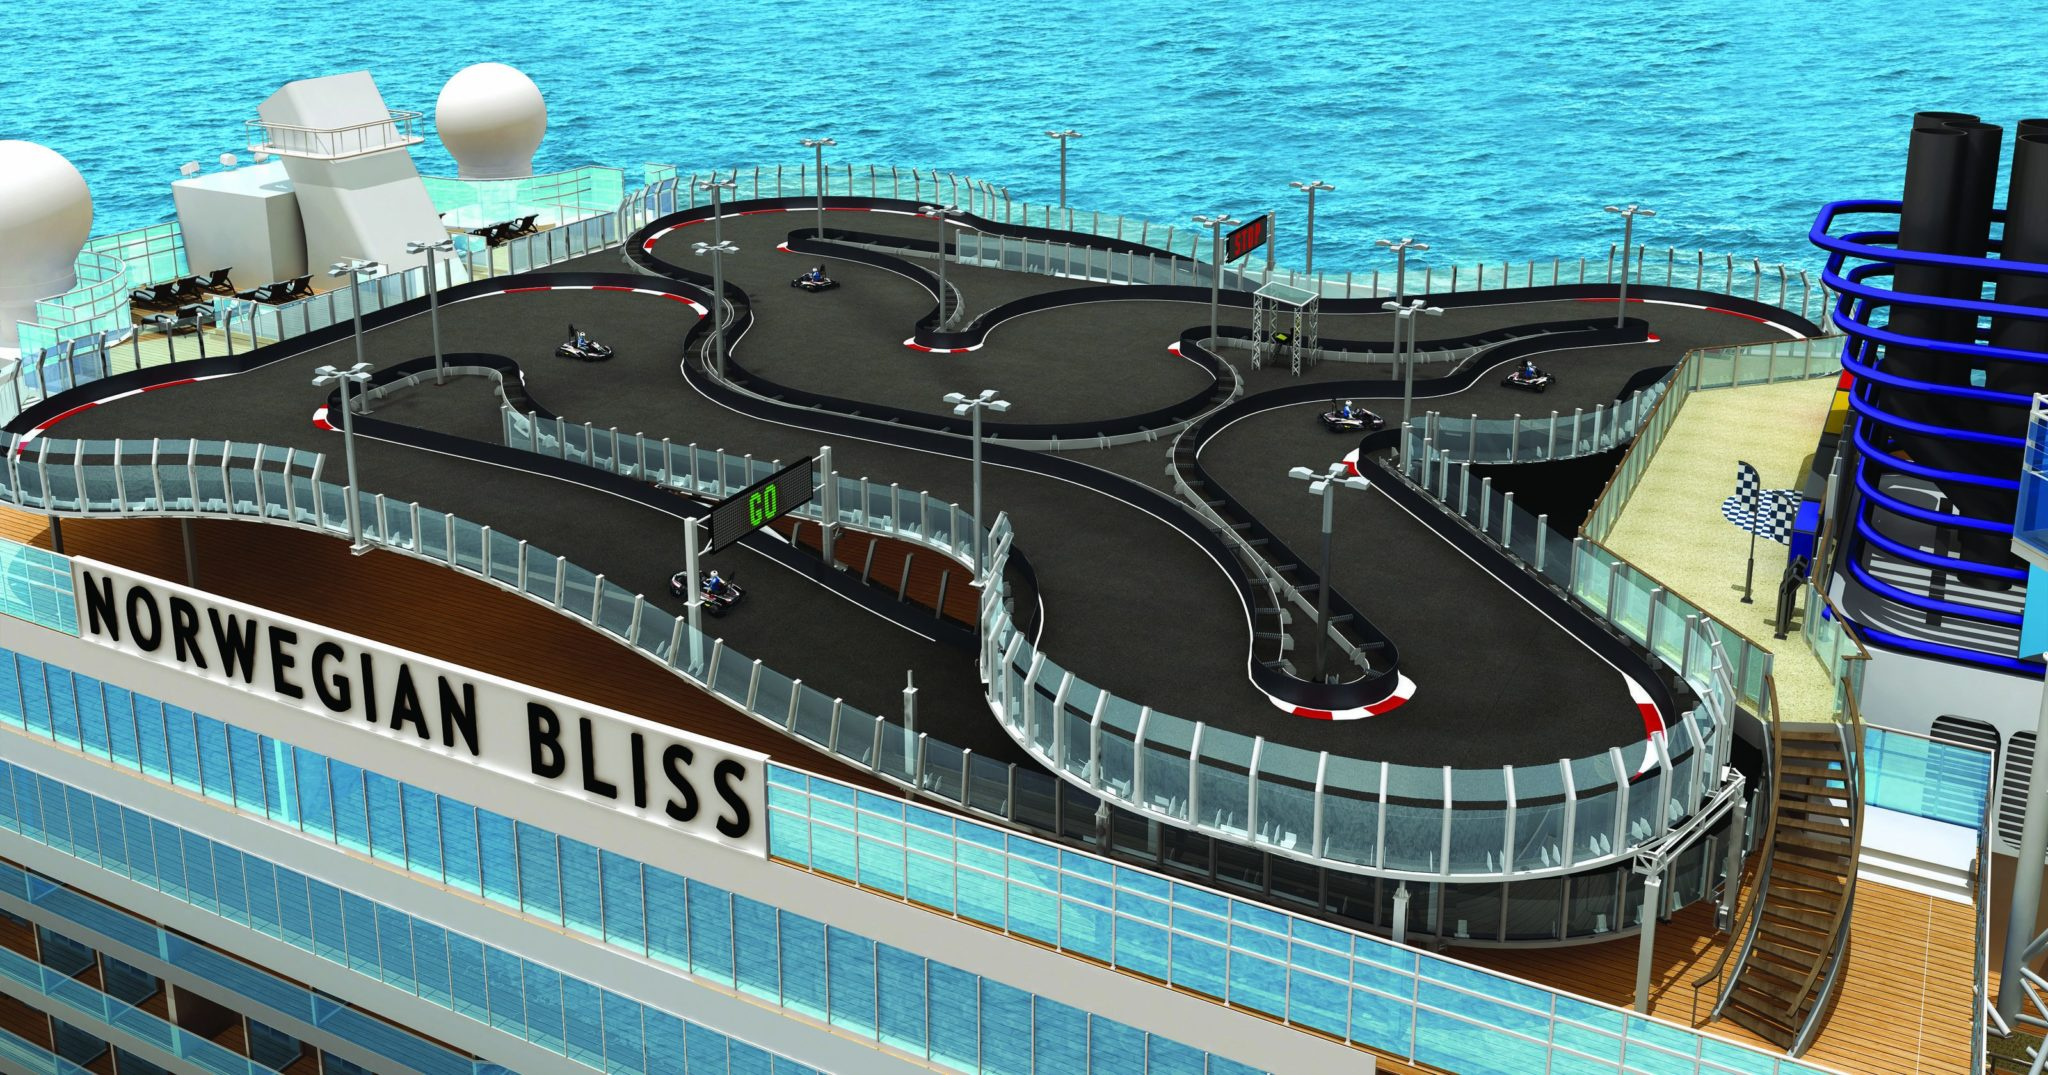 Norwegian confirms race track for new ship